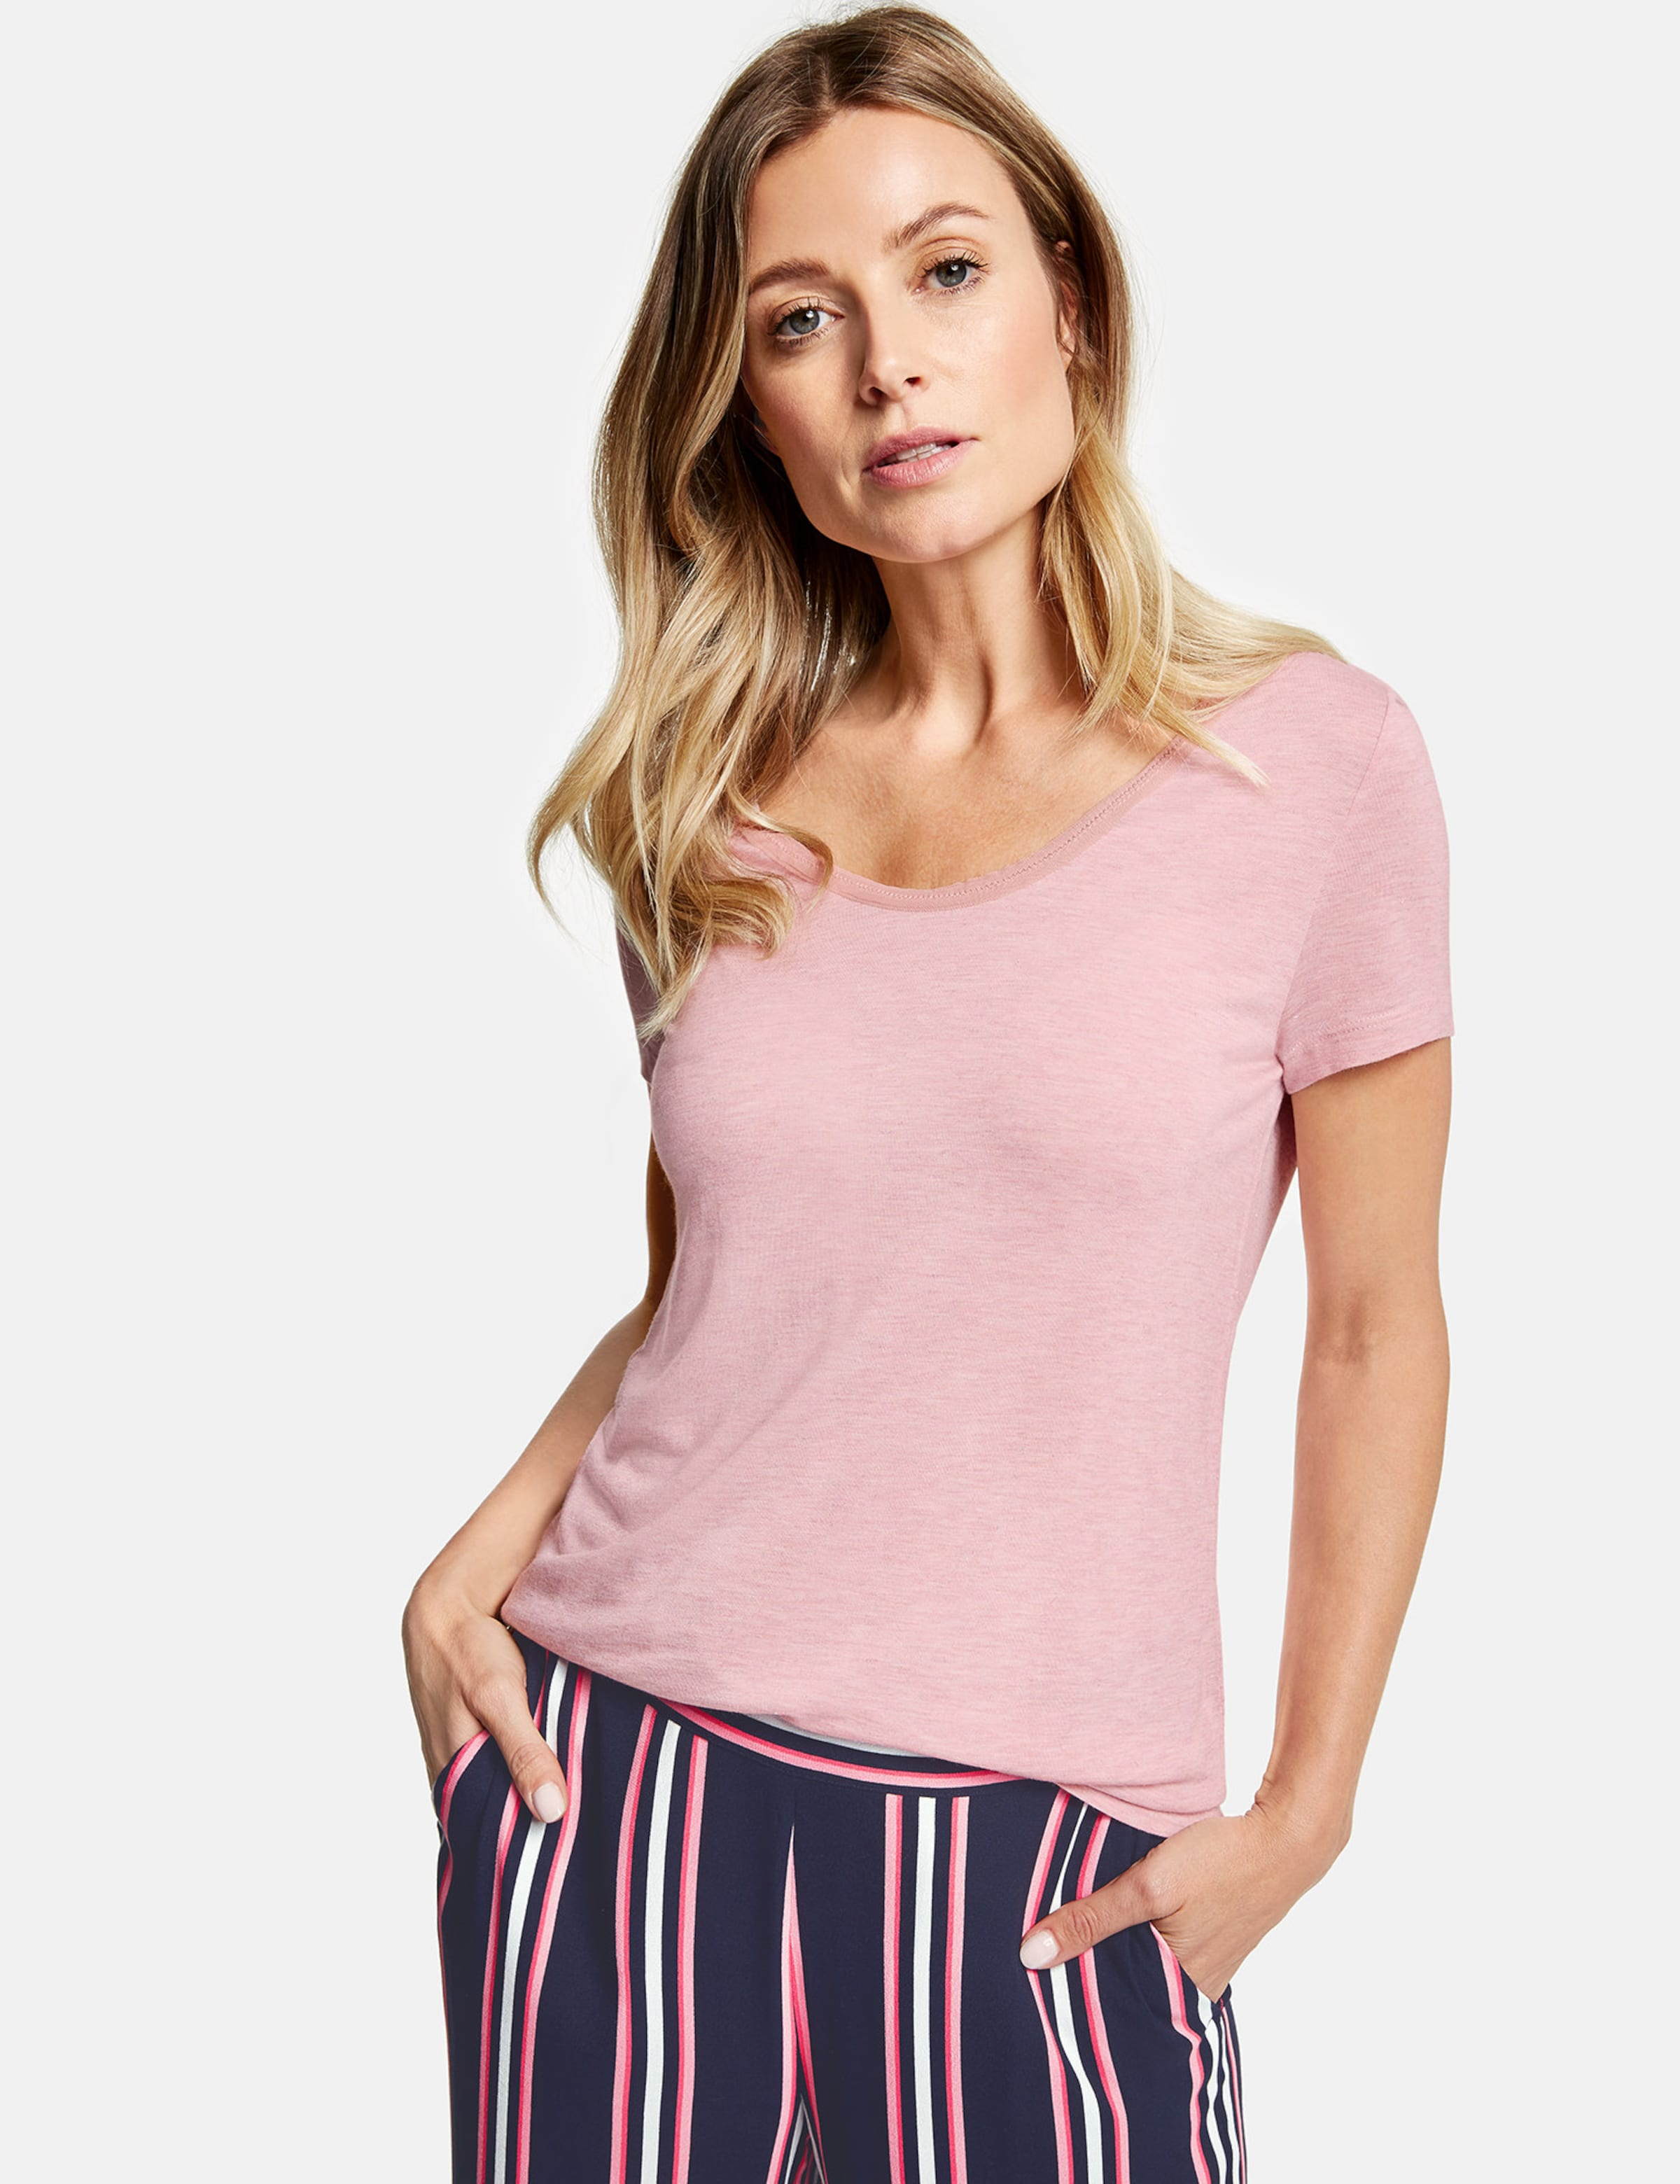 shirt Gerry In Weber Altrosa T DHIE29